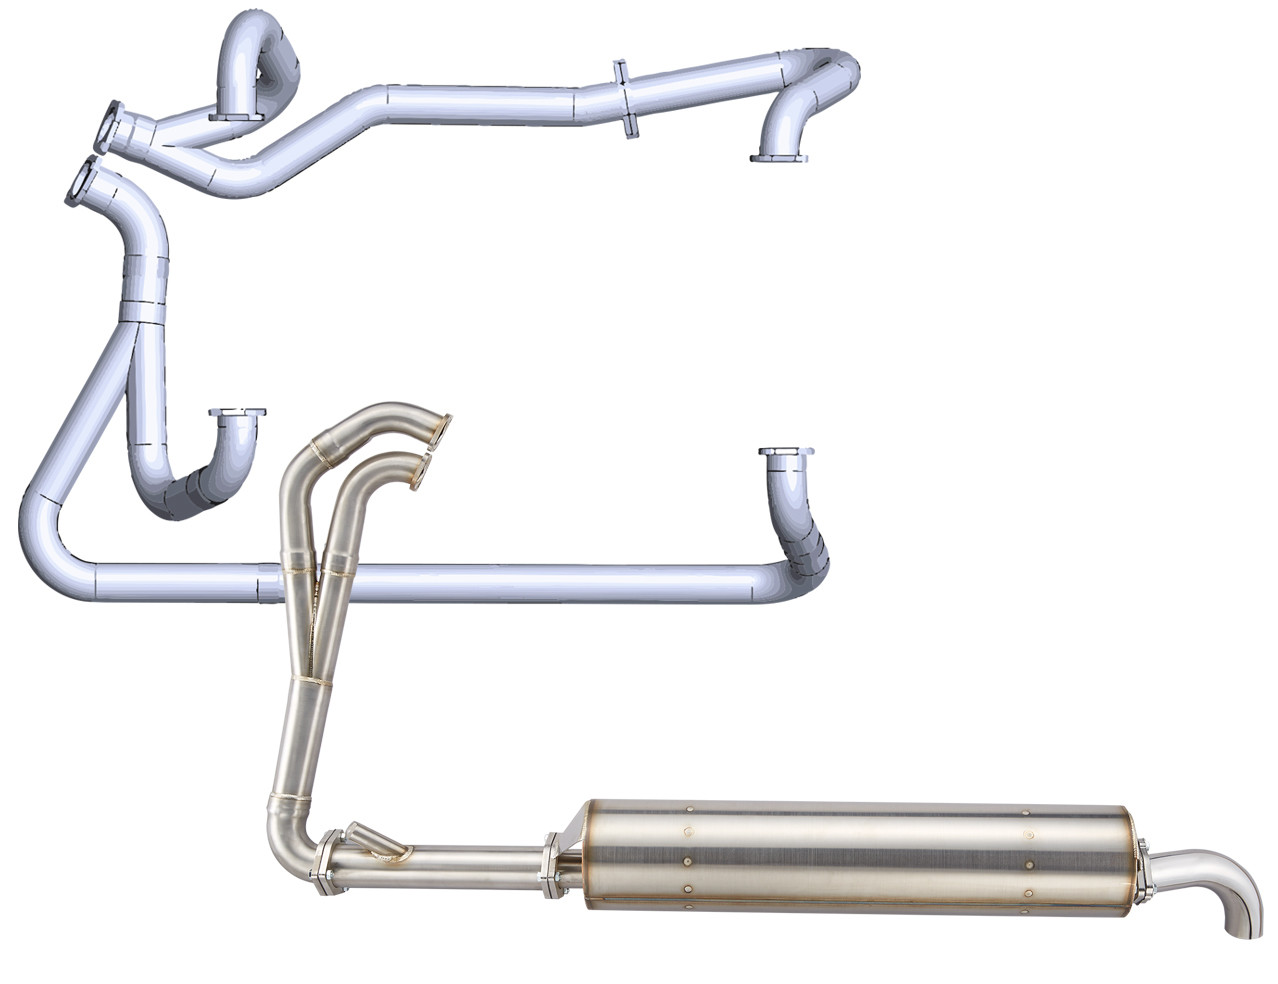 VW T3 2.1L POWER EXHAUST SYSTEM, FROM HEADER TO TAIL PIPE (Compatible with 1.9L model also)